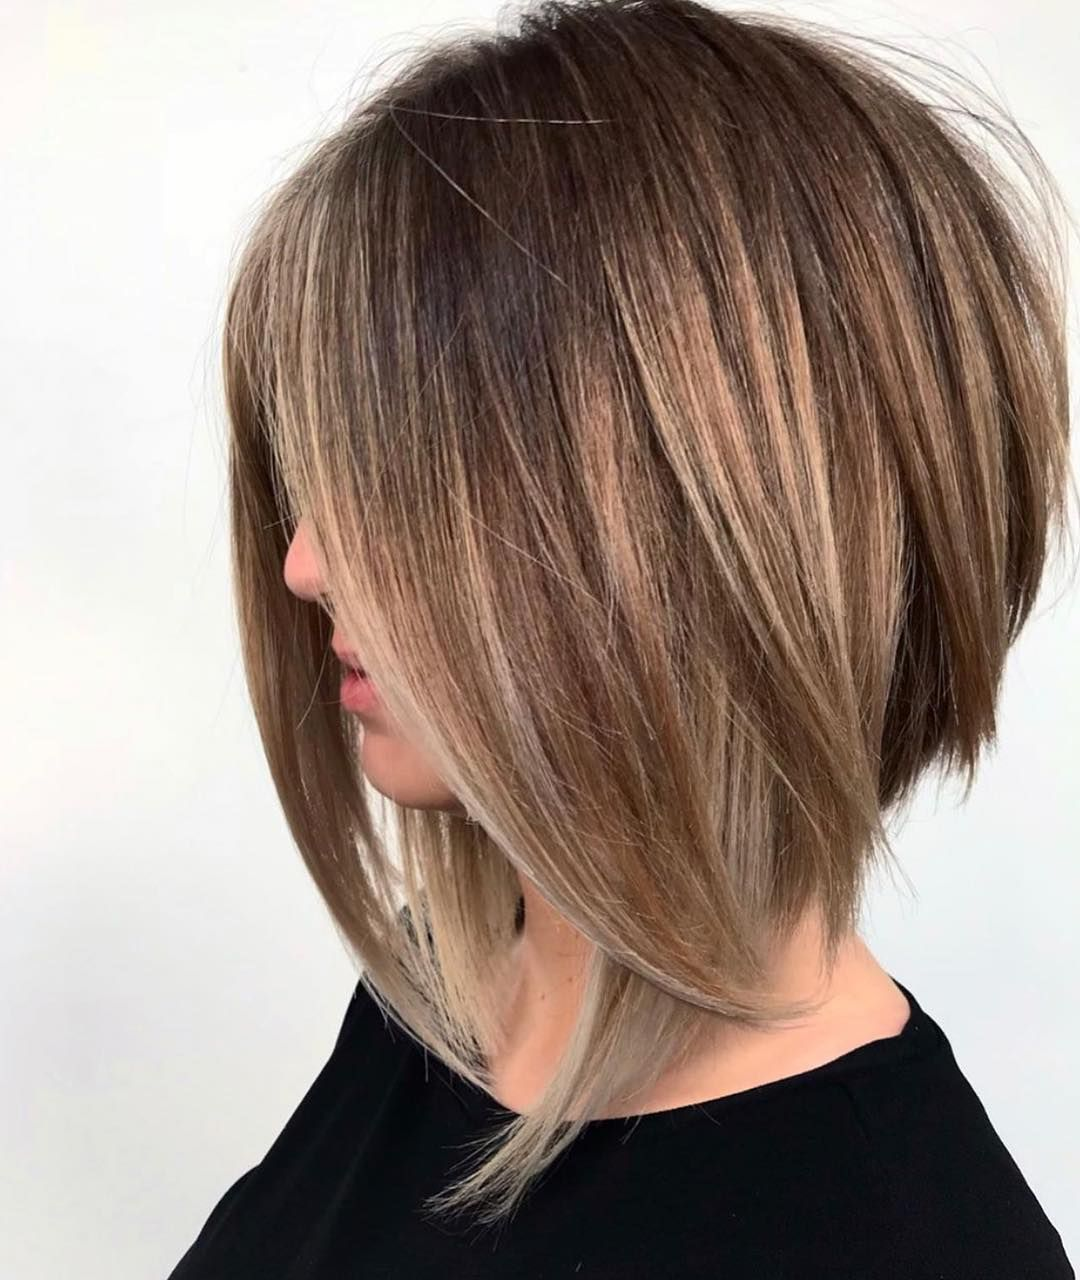 Perfect Beautiful Barrell Looks Haircut For Thick Hair Angled Bob Hairstyles Angled Bob Haircuts